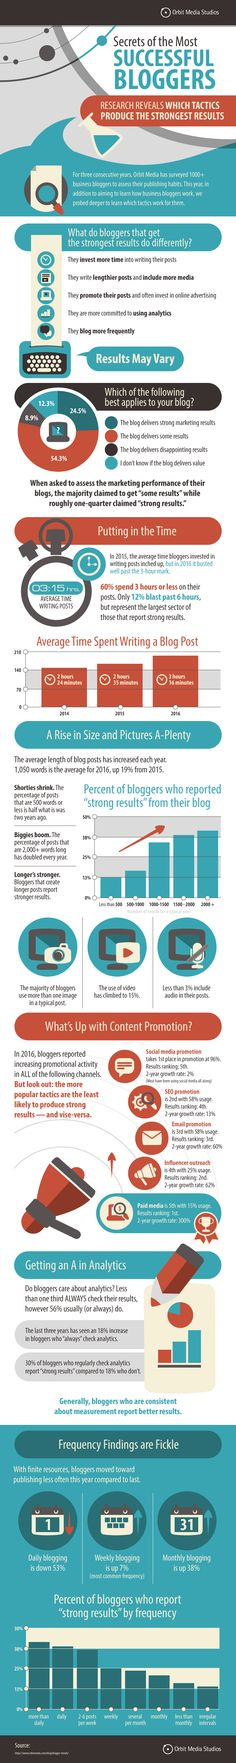 Which Blogging Tactics Produce the Strongest Results? [Infographic] | Social Media Today